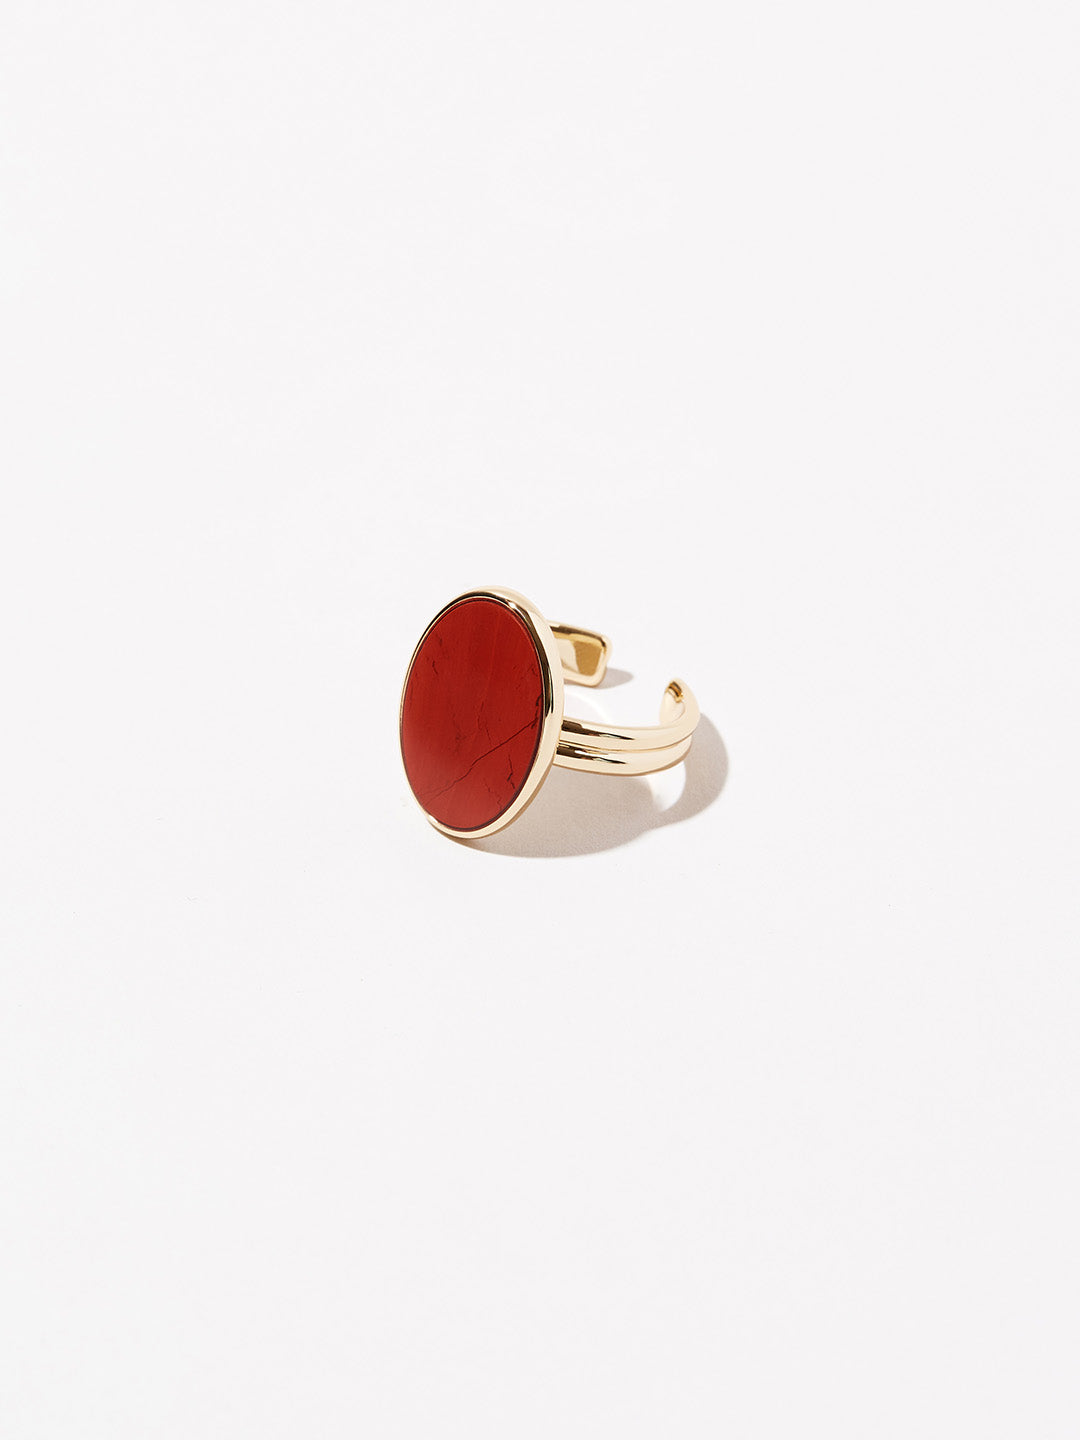 Ana Luisa Jewelry Rings Gemstone Ring Oval Stone Ring Mara Red Jasper Gold